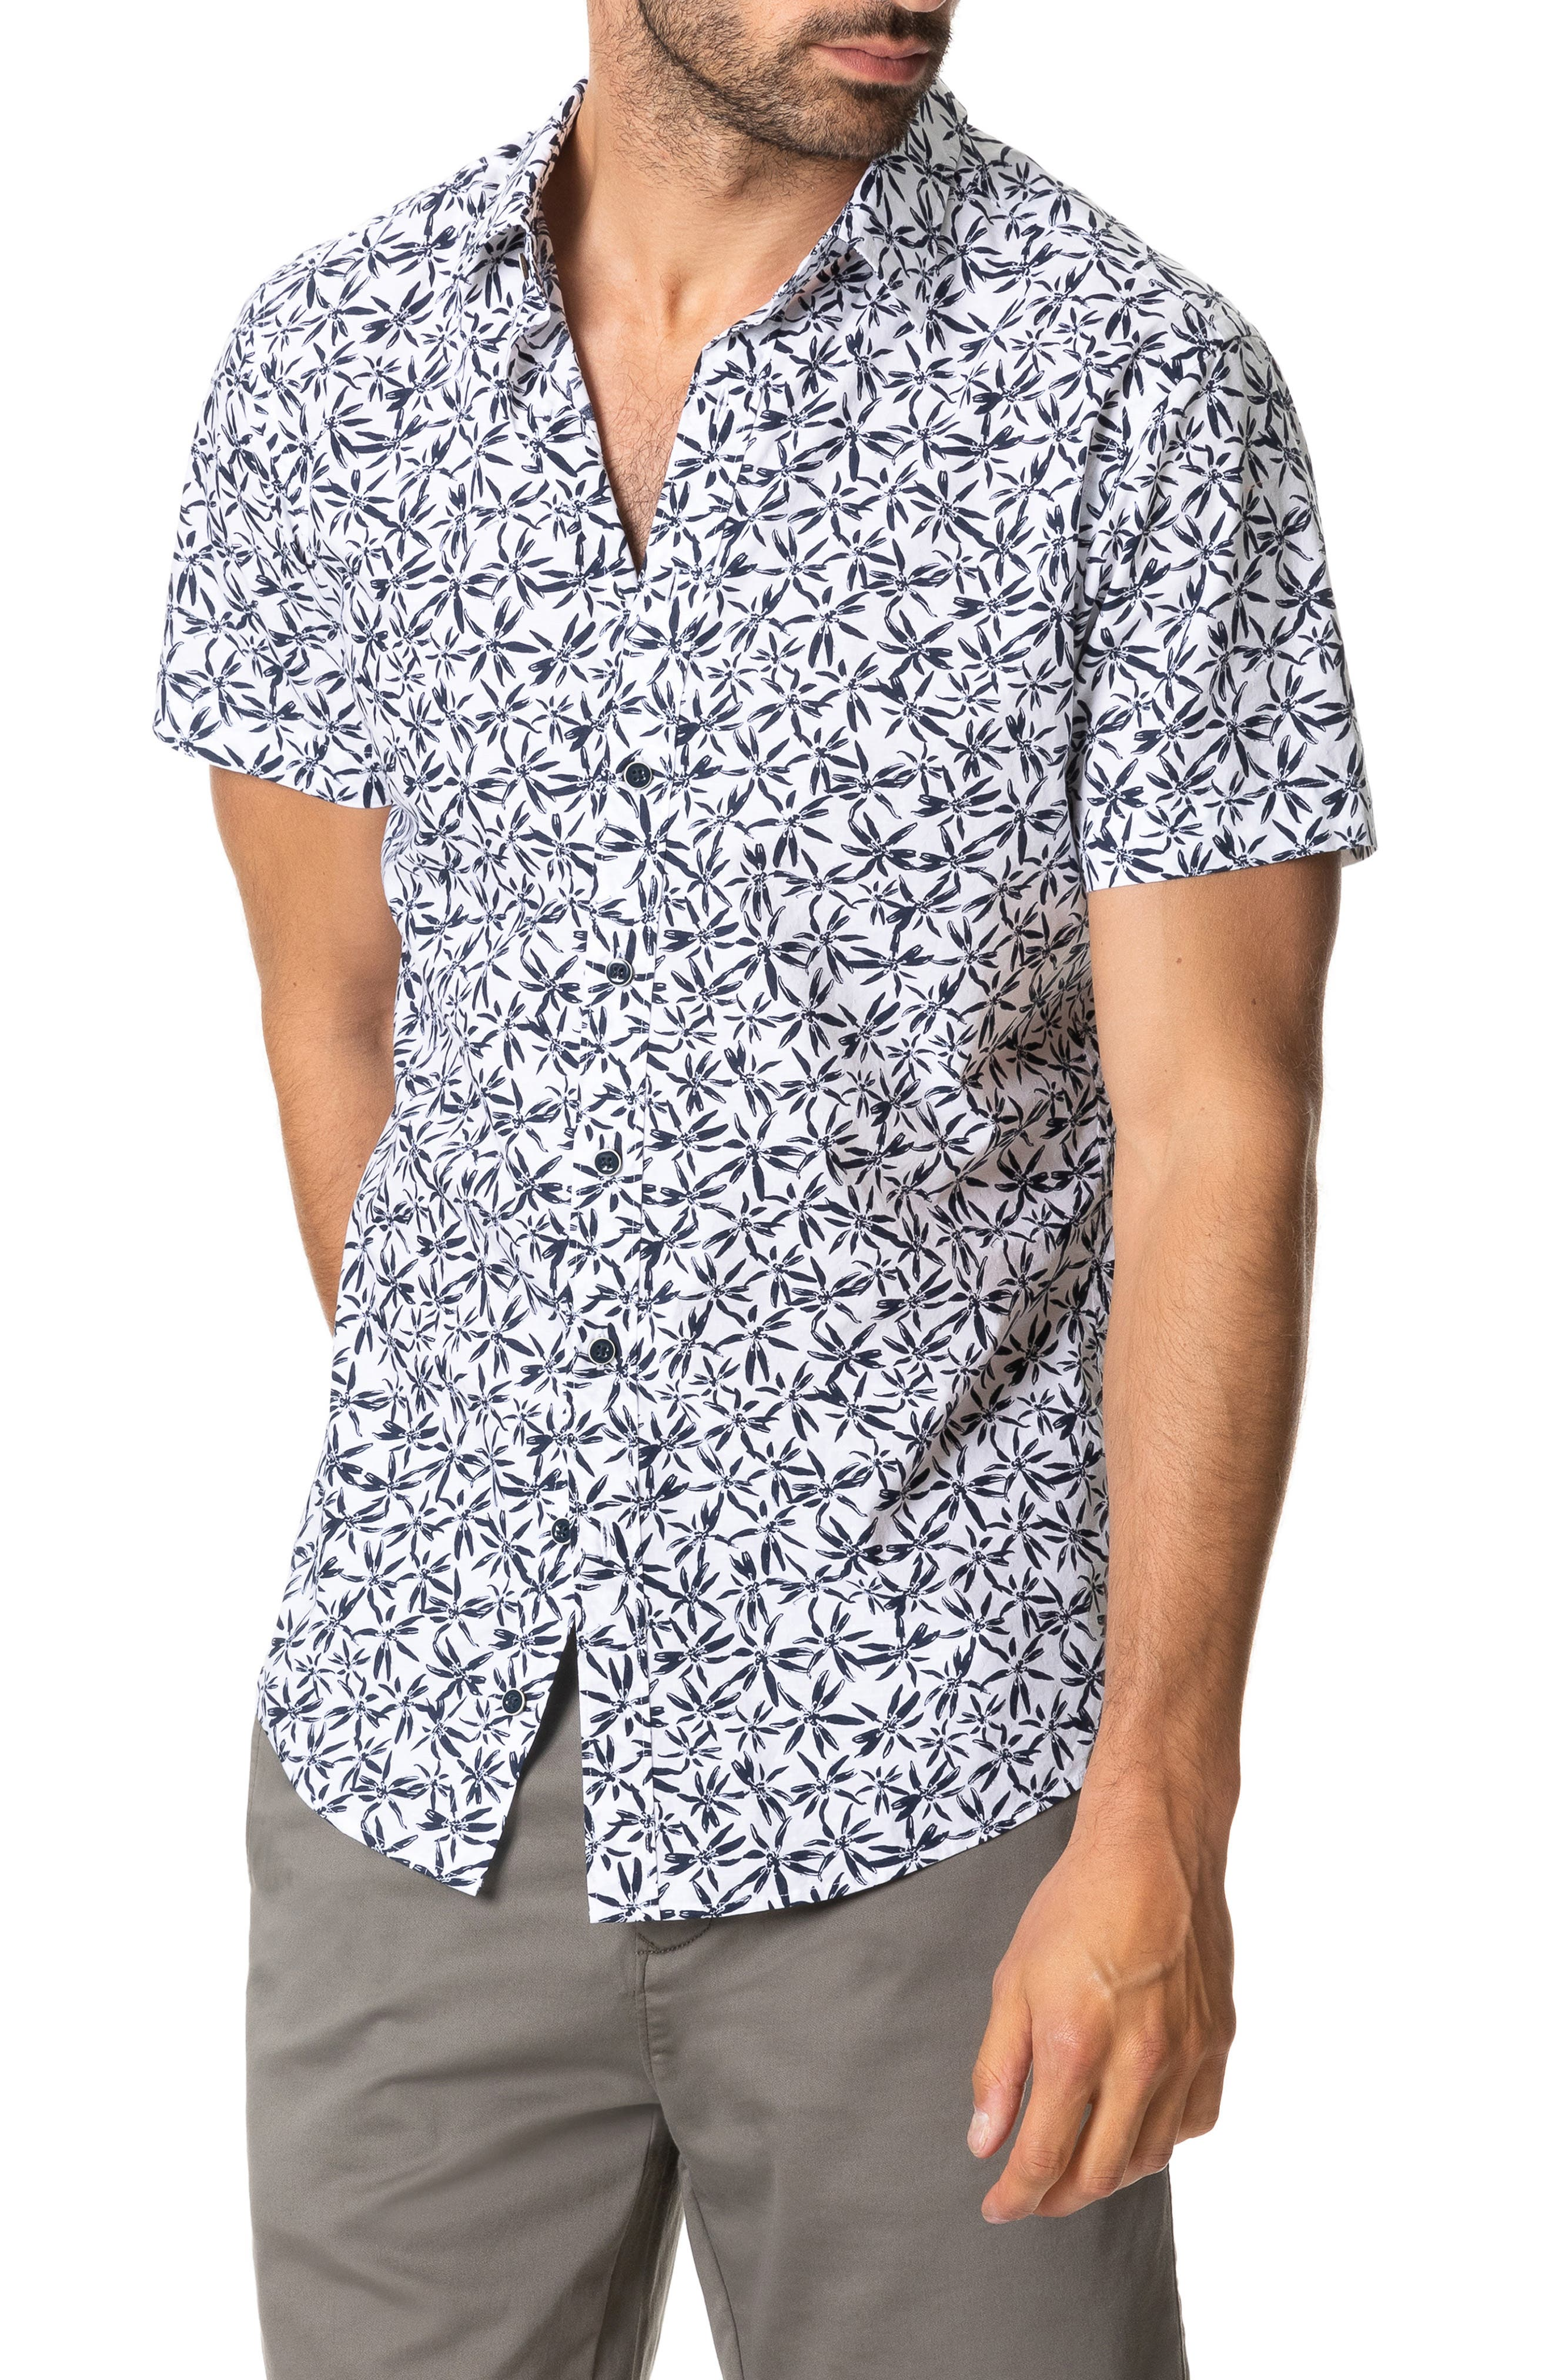 RODD AND GUNN Whitstone Floral Short Sleeve Button-Up Shirt at Nordstrom Rack